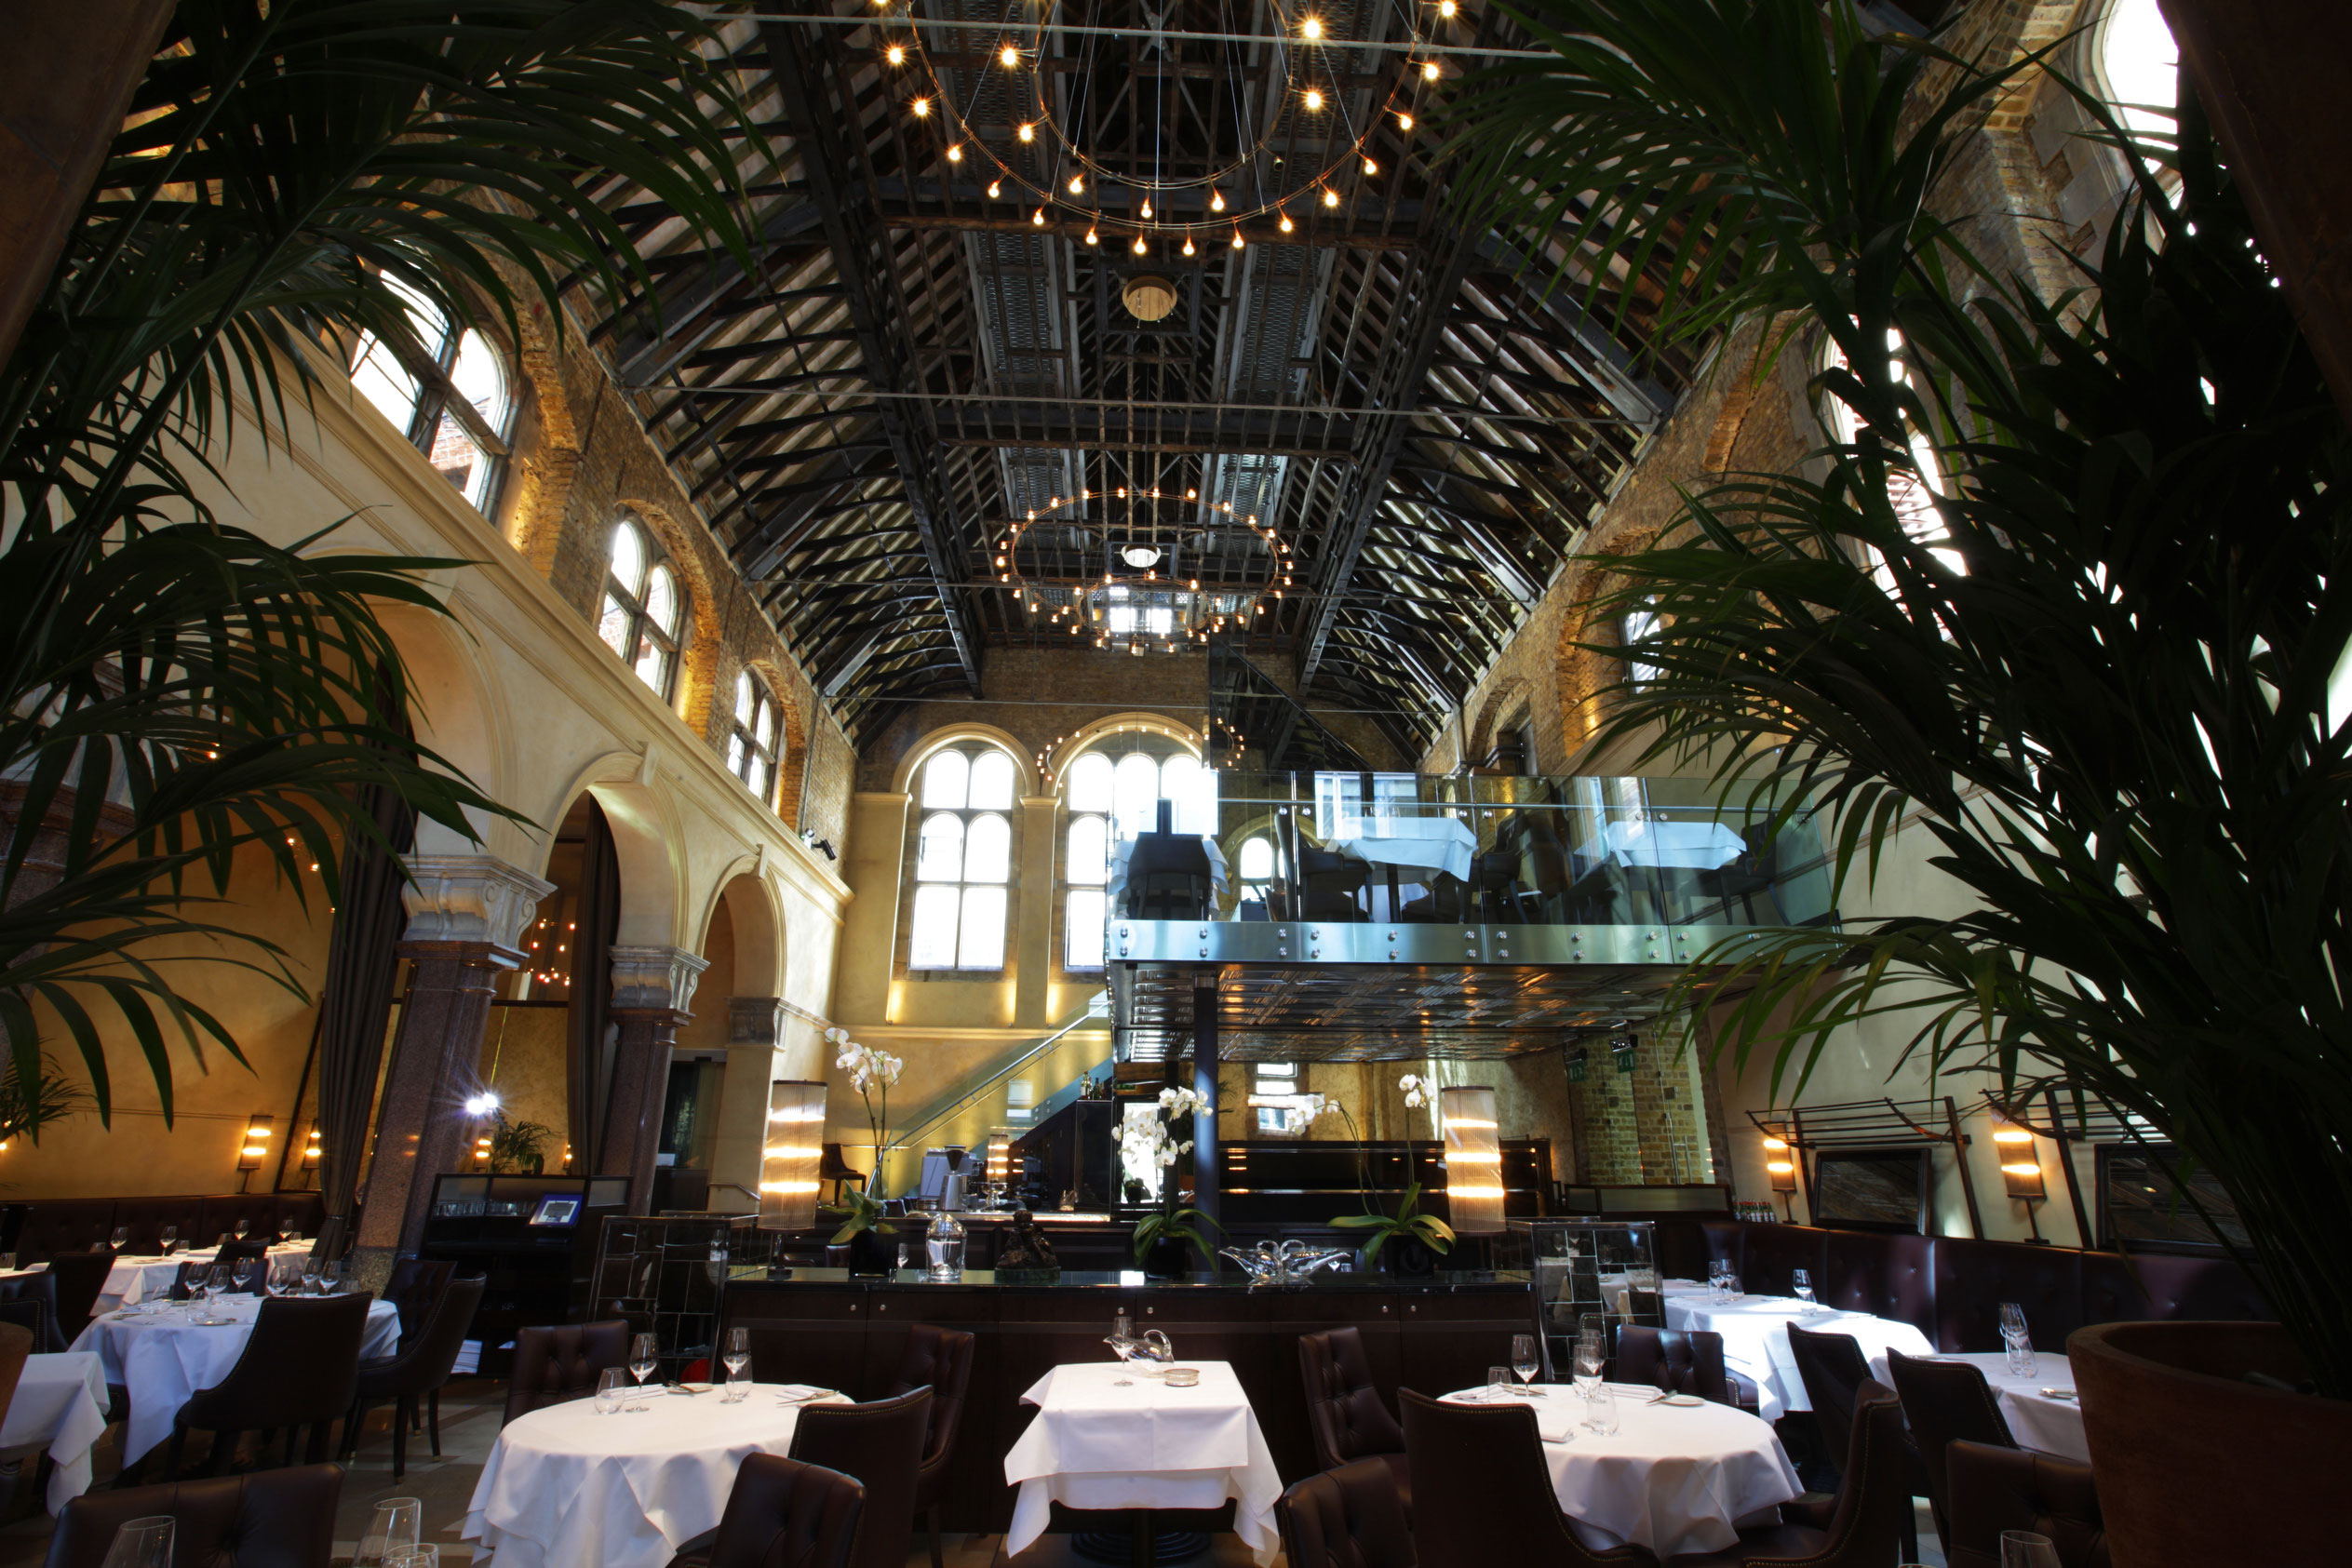 Reserve a table at Galvin La Chapelle